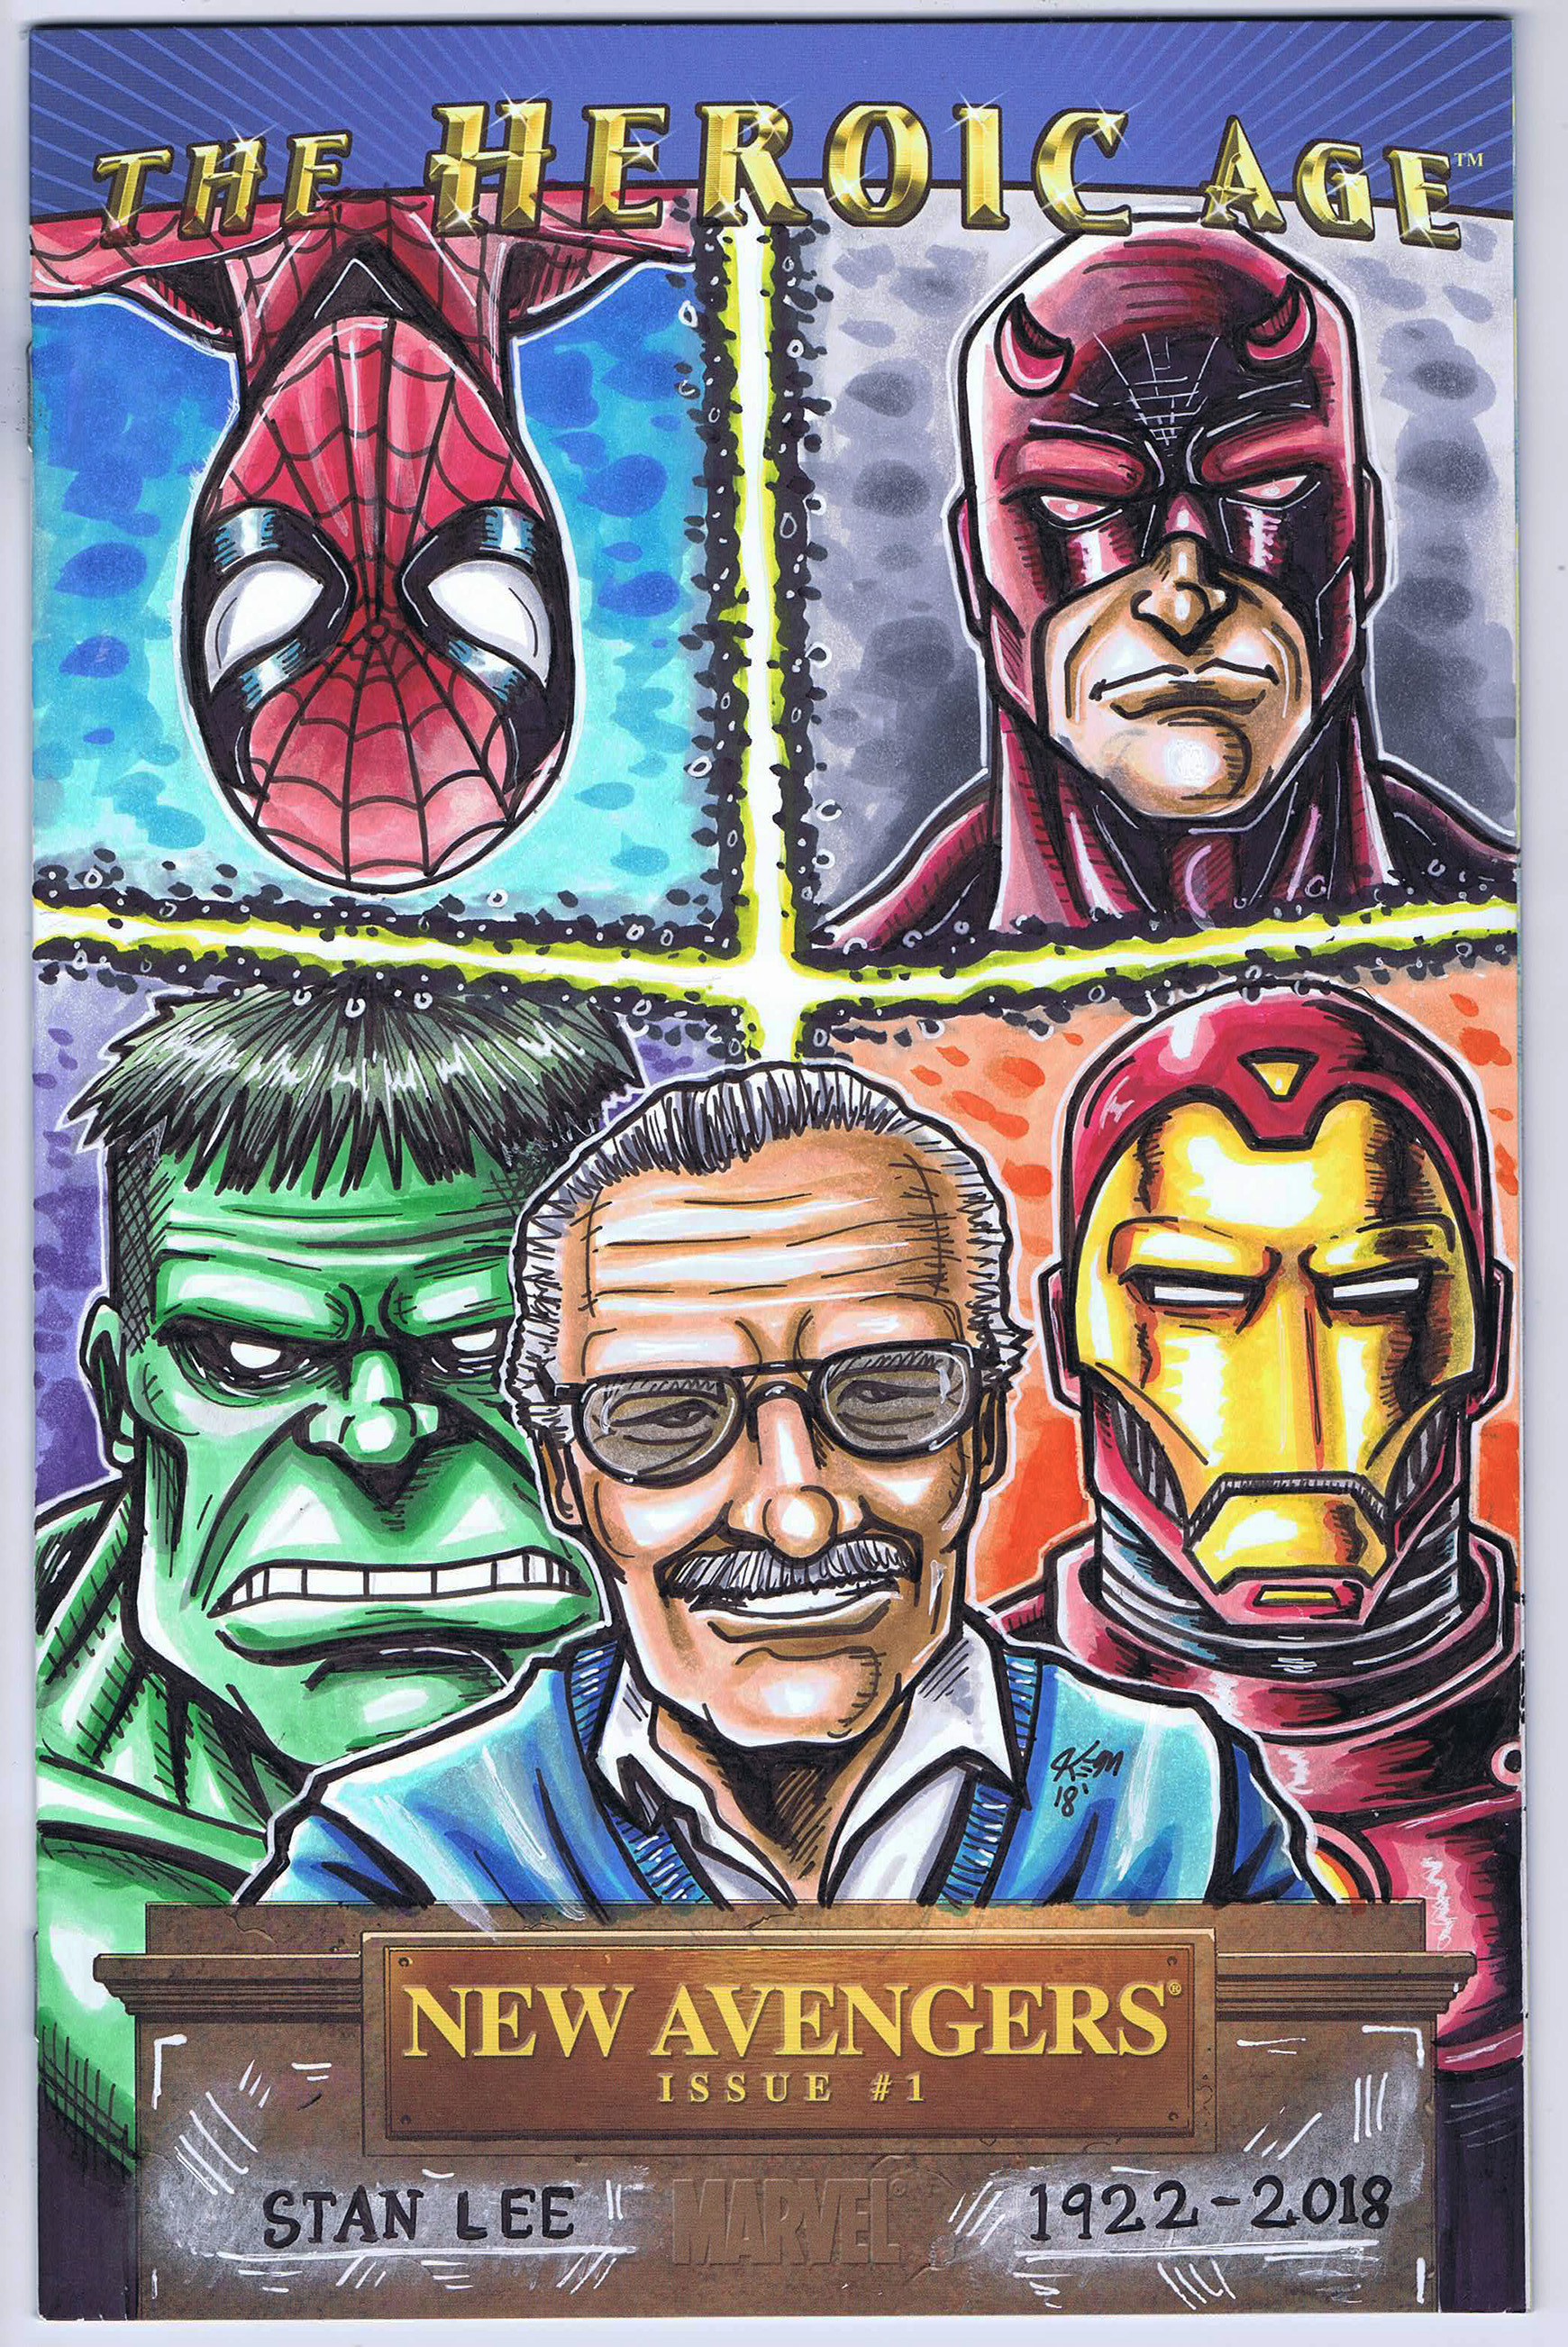 stan lee sketch cover 2